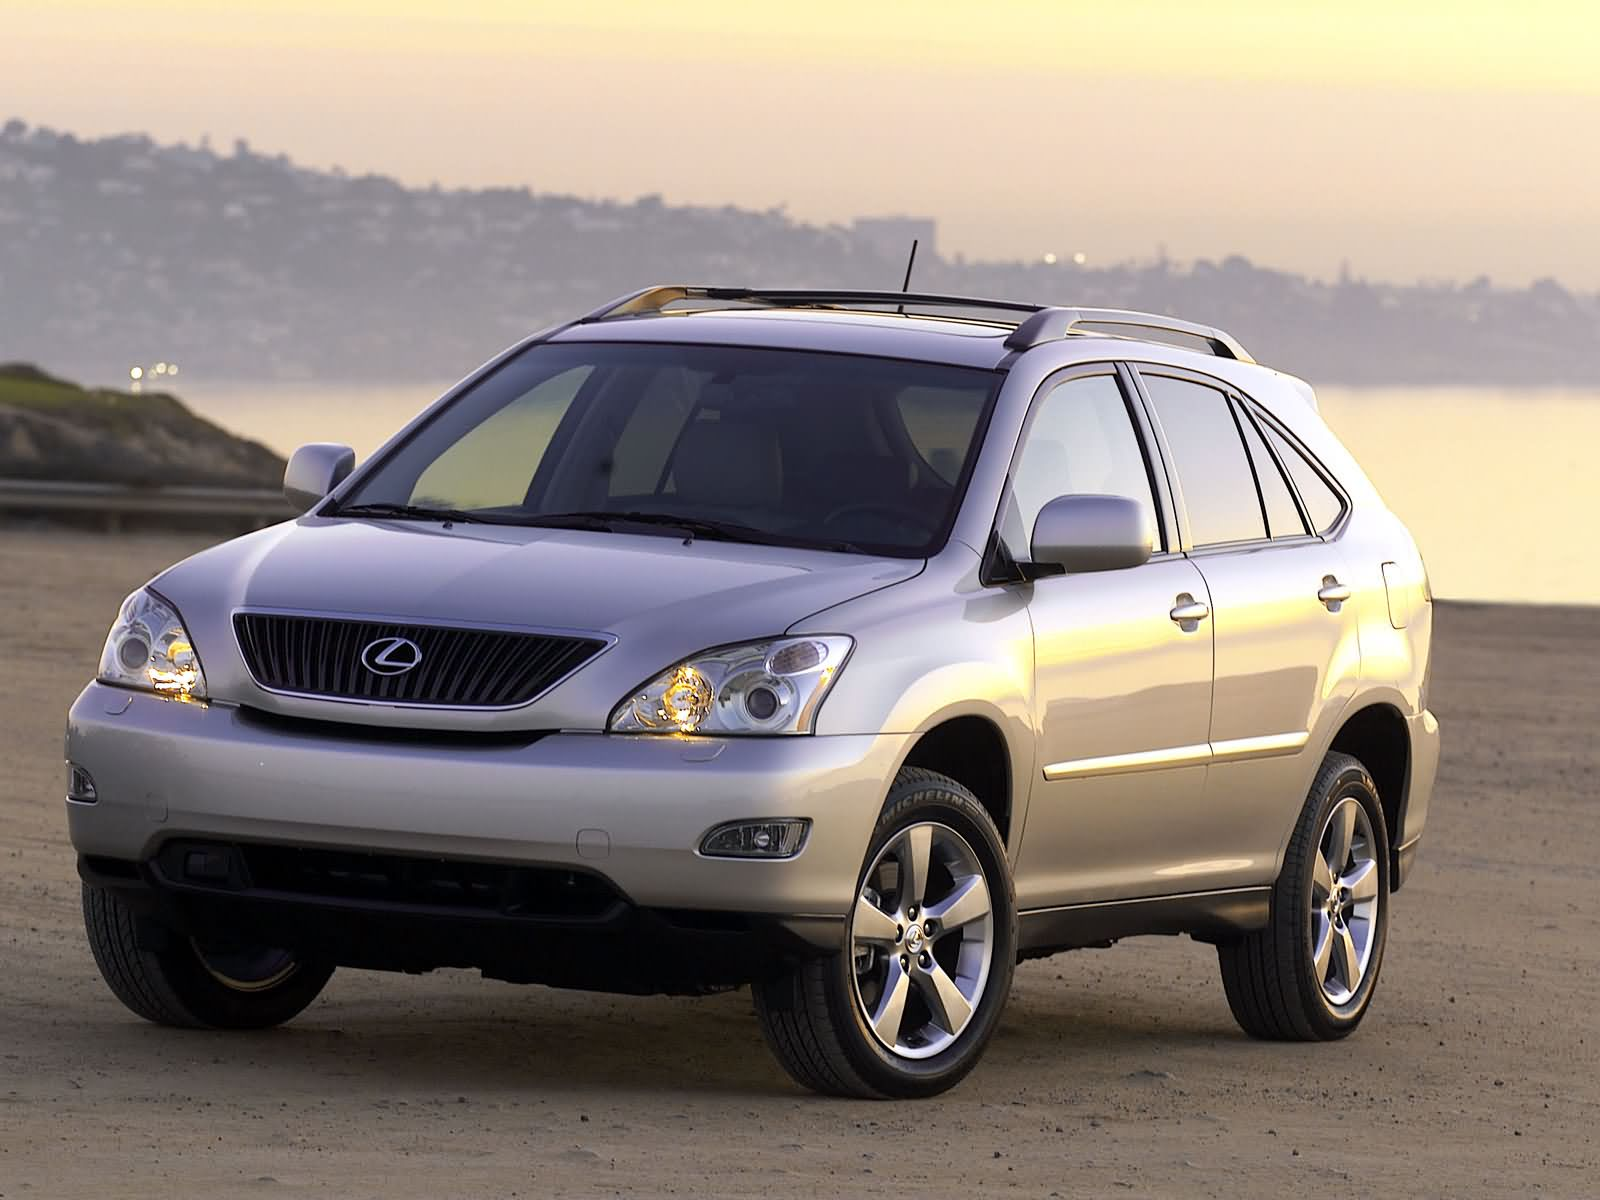 lexus rx 330 photos photogallery with 18 pics. Black Bedroom Furniture Sets. Home Design Ideas